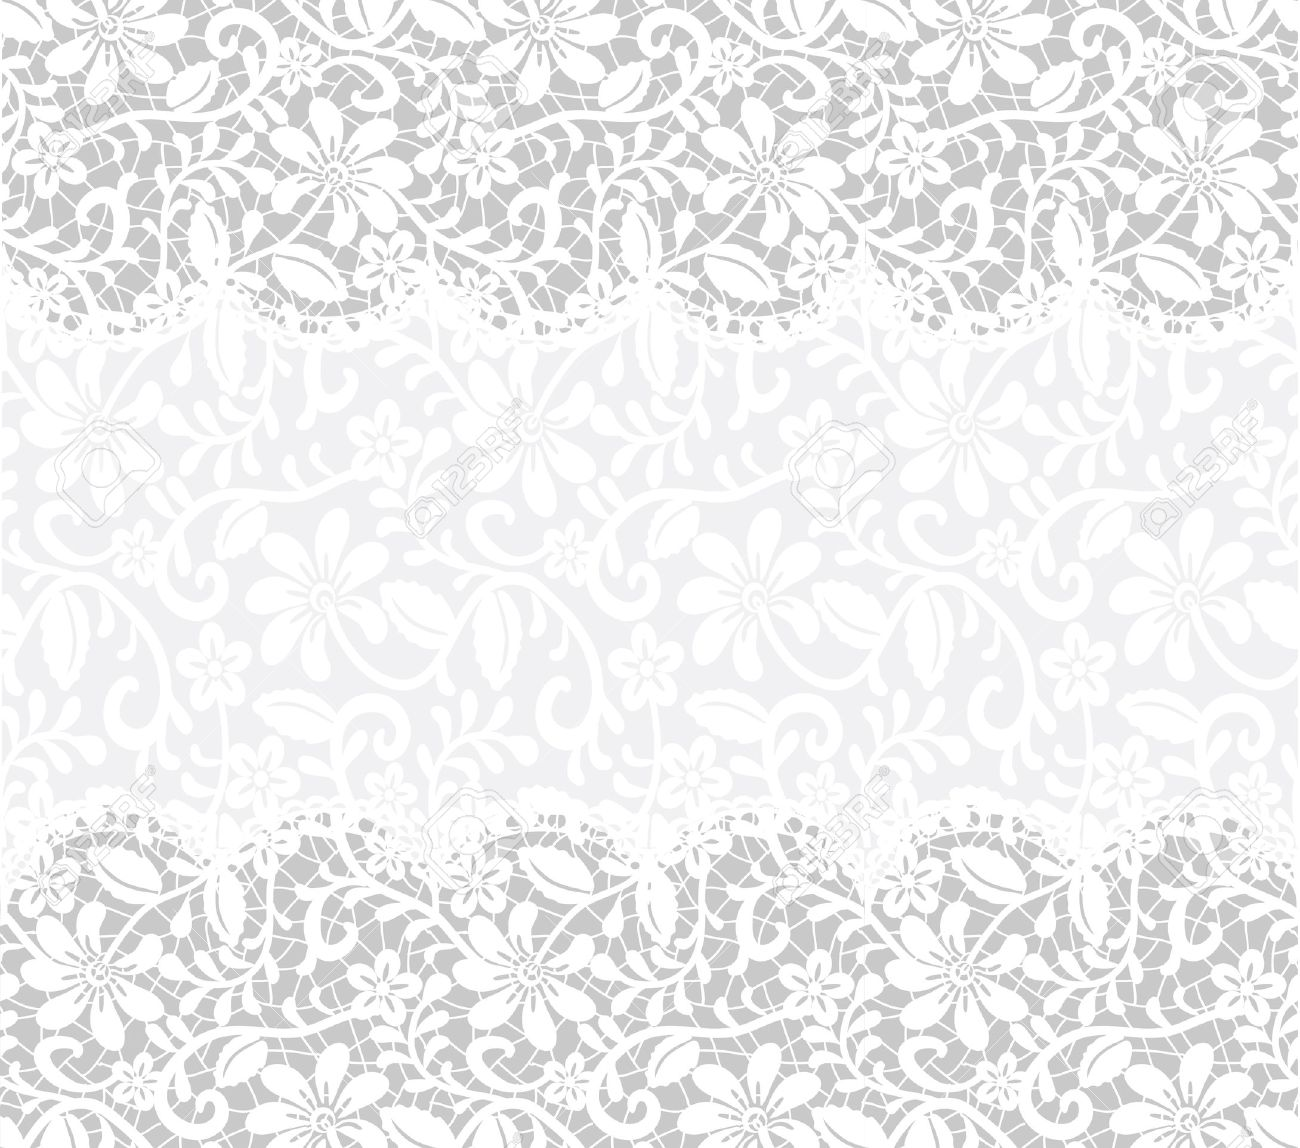 Template For Wedding Invitation Or Greeting Card With Lace Fabric